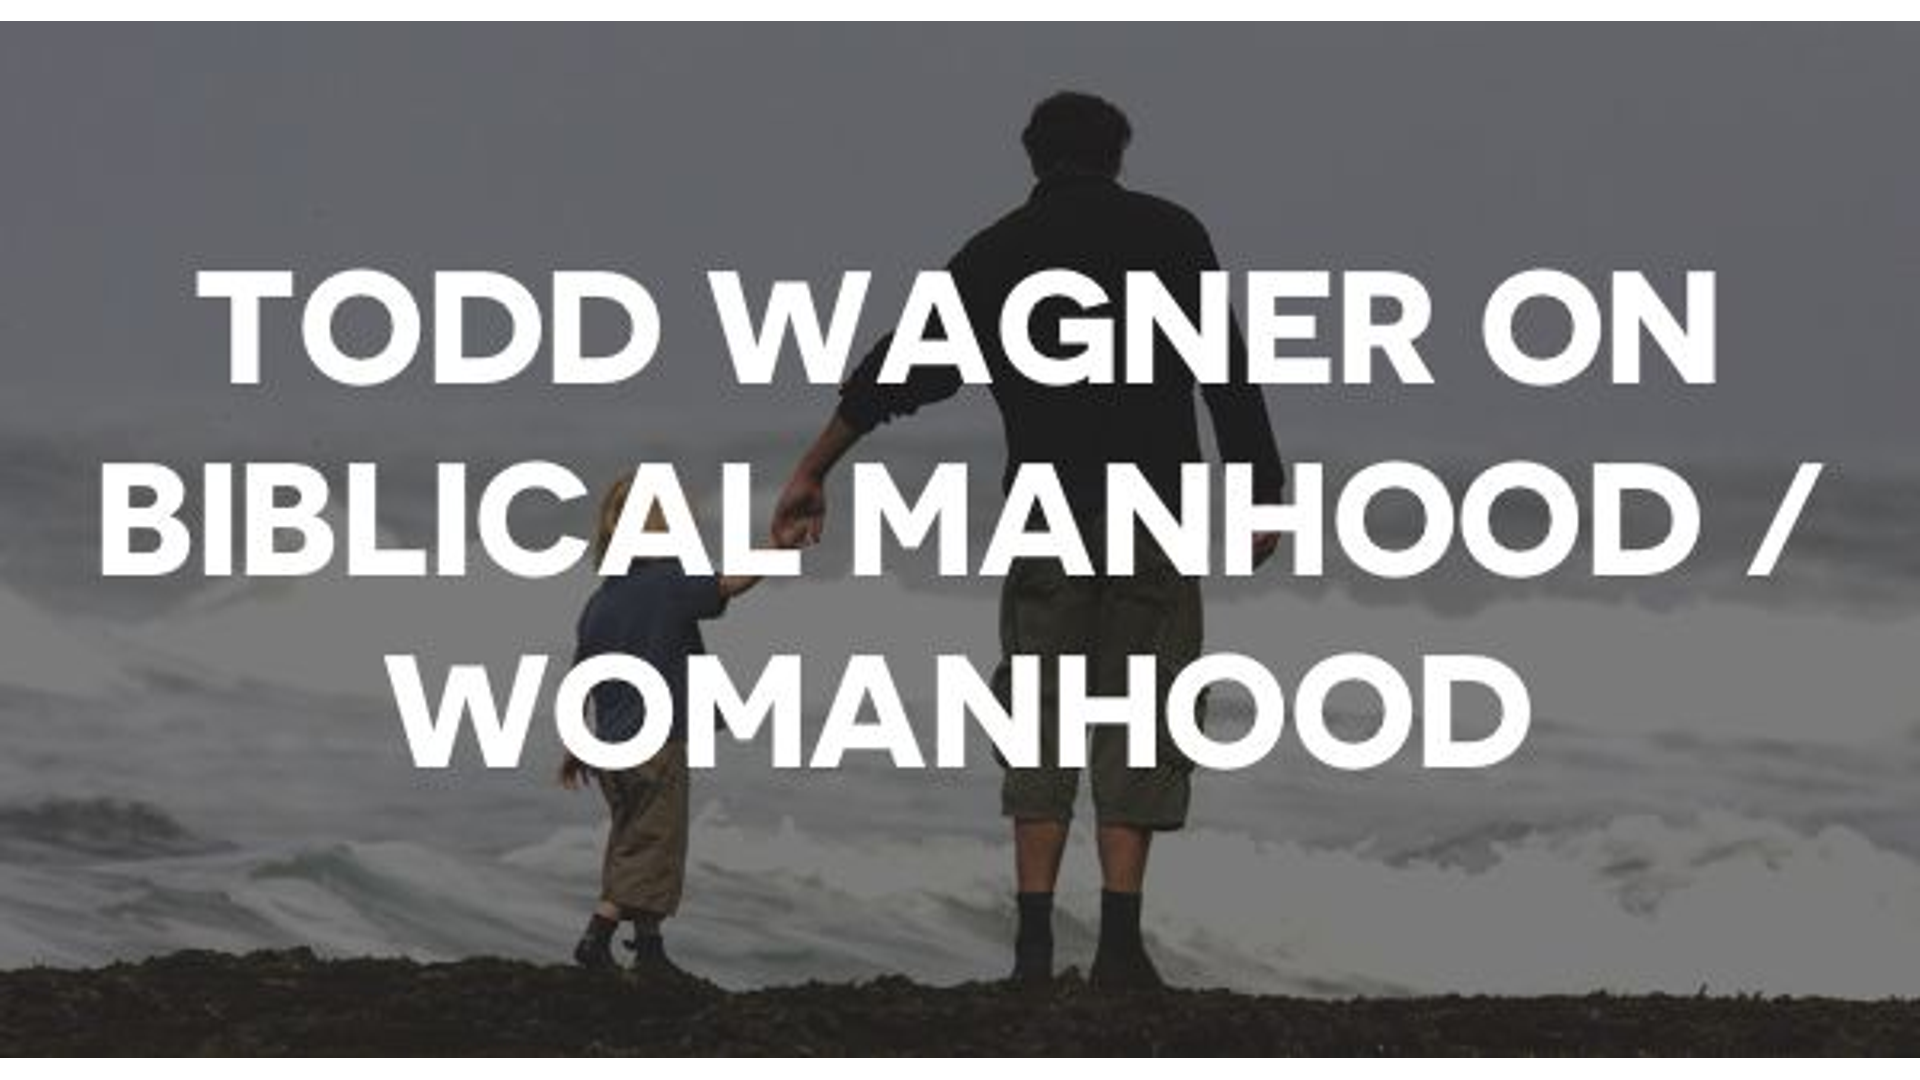 Todd Wagner Speaks With Family Life Radio On Biblical Manhood / Womanhood Hero Image